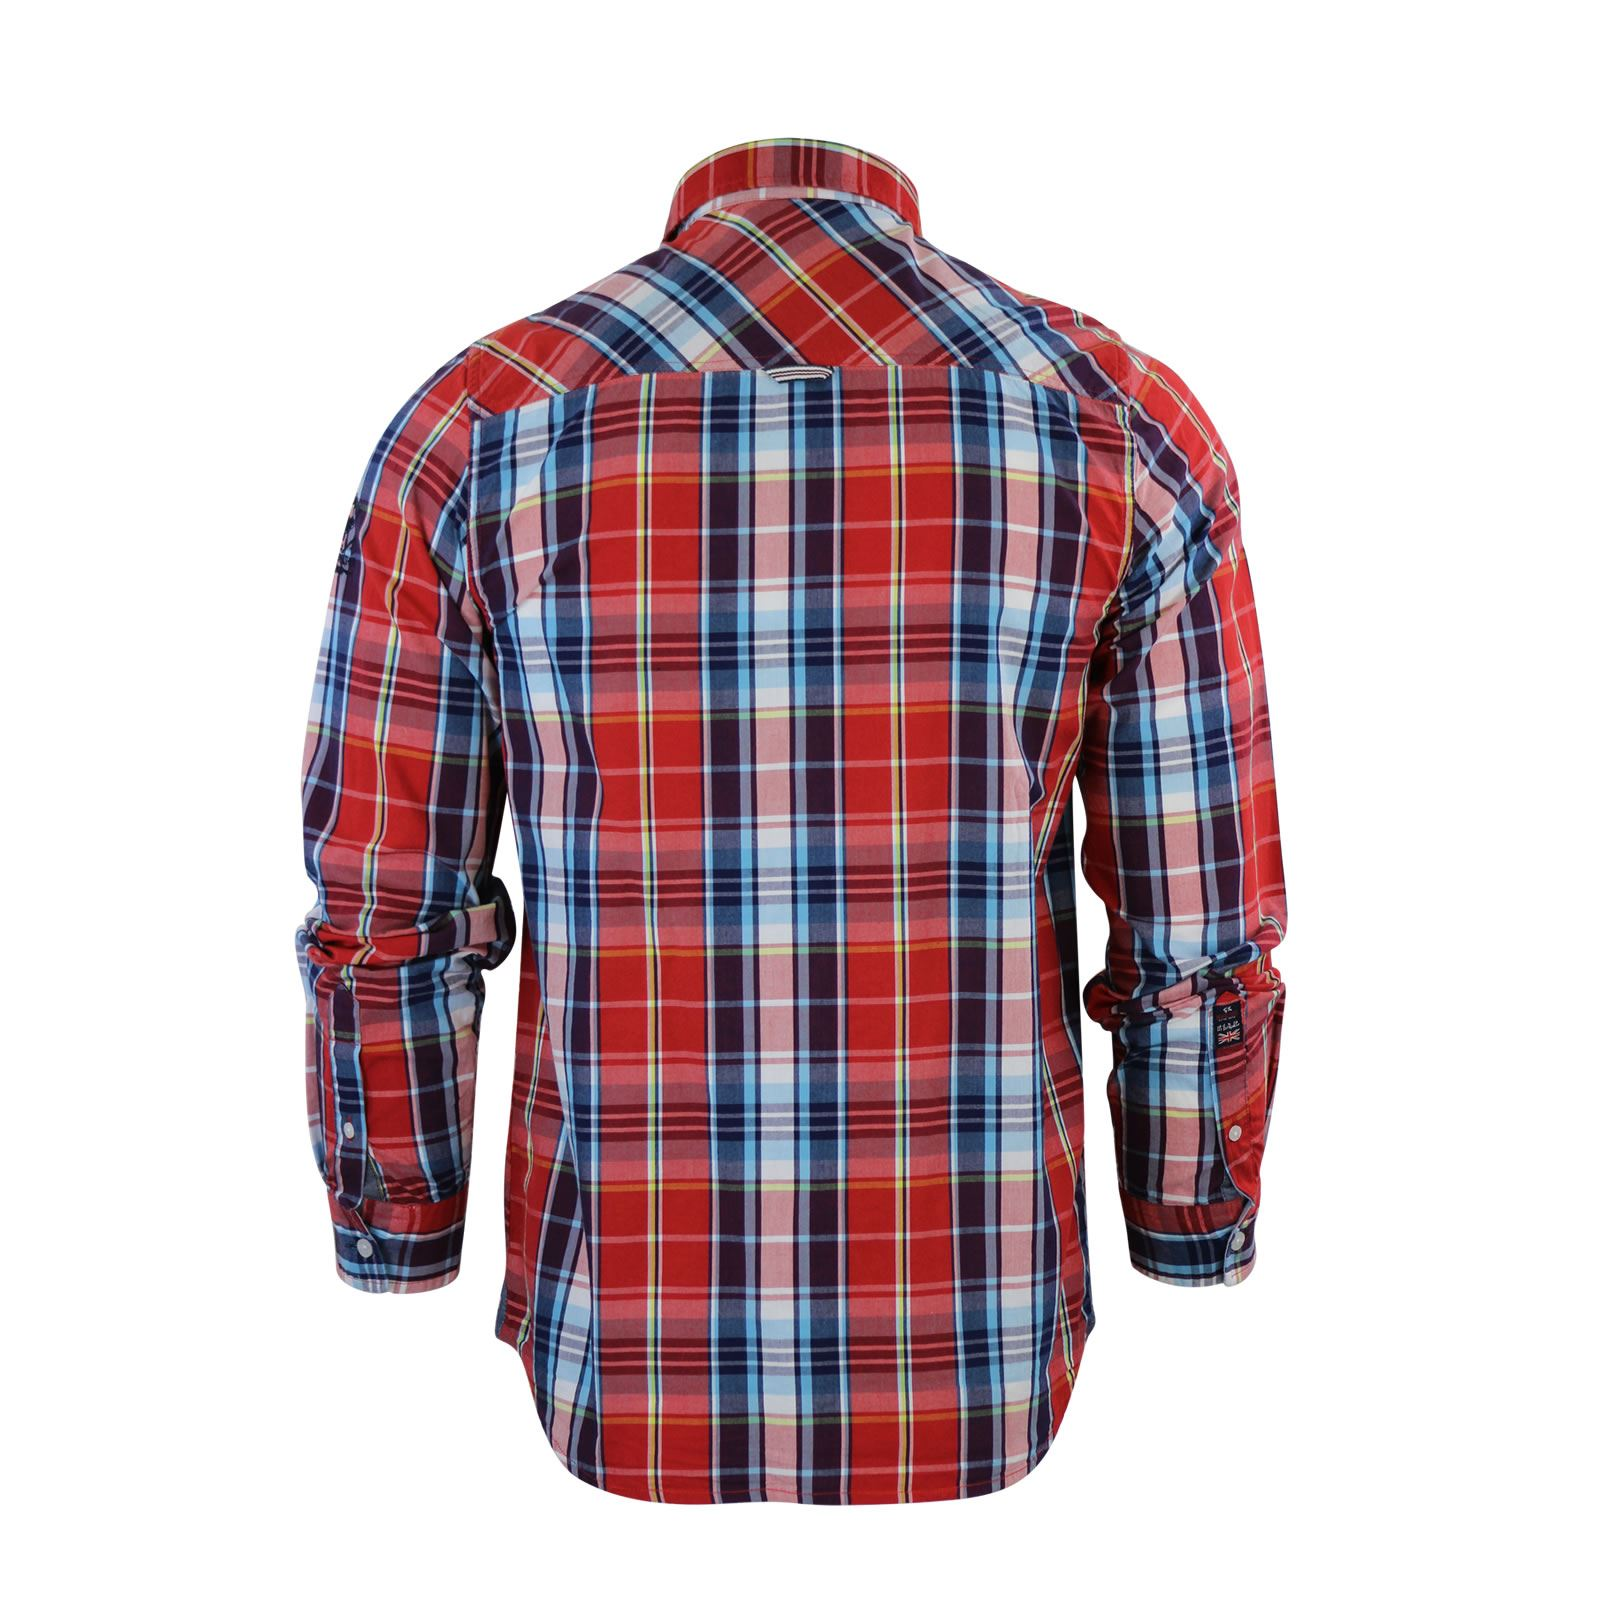 Mens-Check-Shirt-Brave-Soul-Flannel-Brushed-Cotton-Long-Sleeve-Casual-Top thumbnail 51